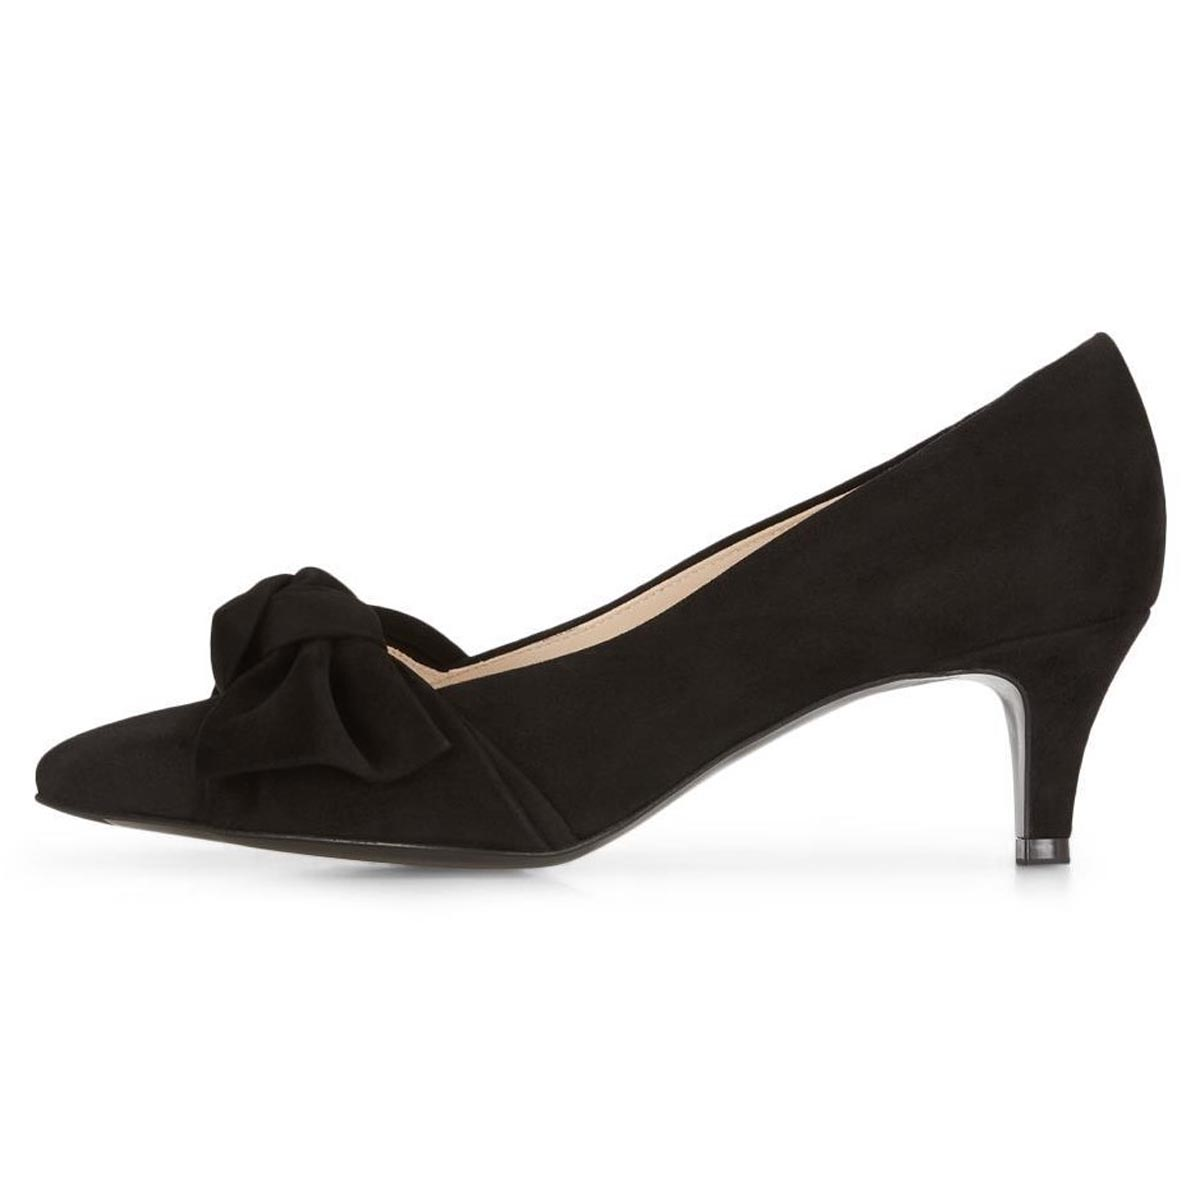 Carry - Peter Kaiser Black Suede Court Shoe